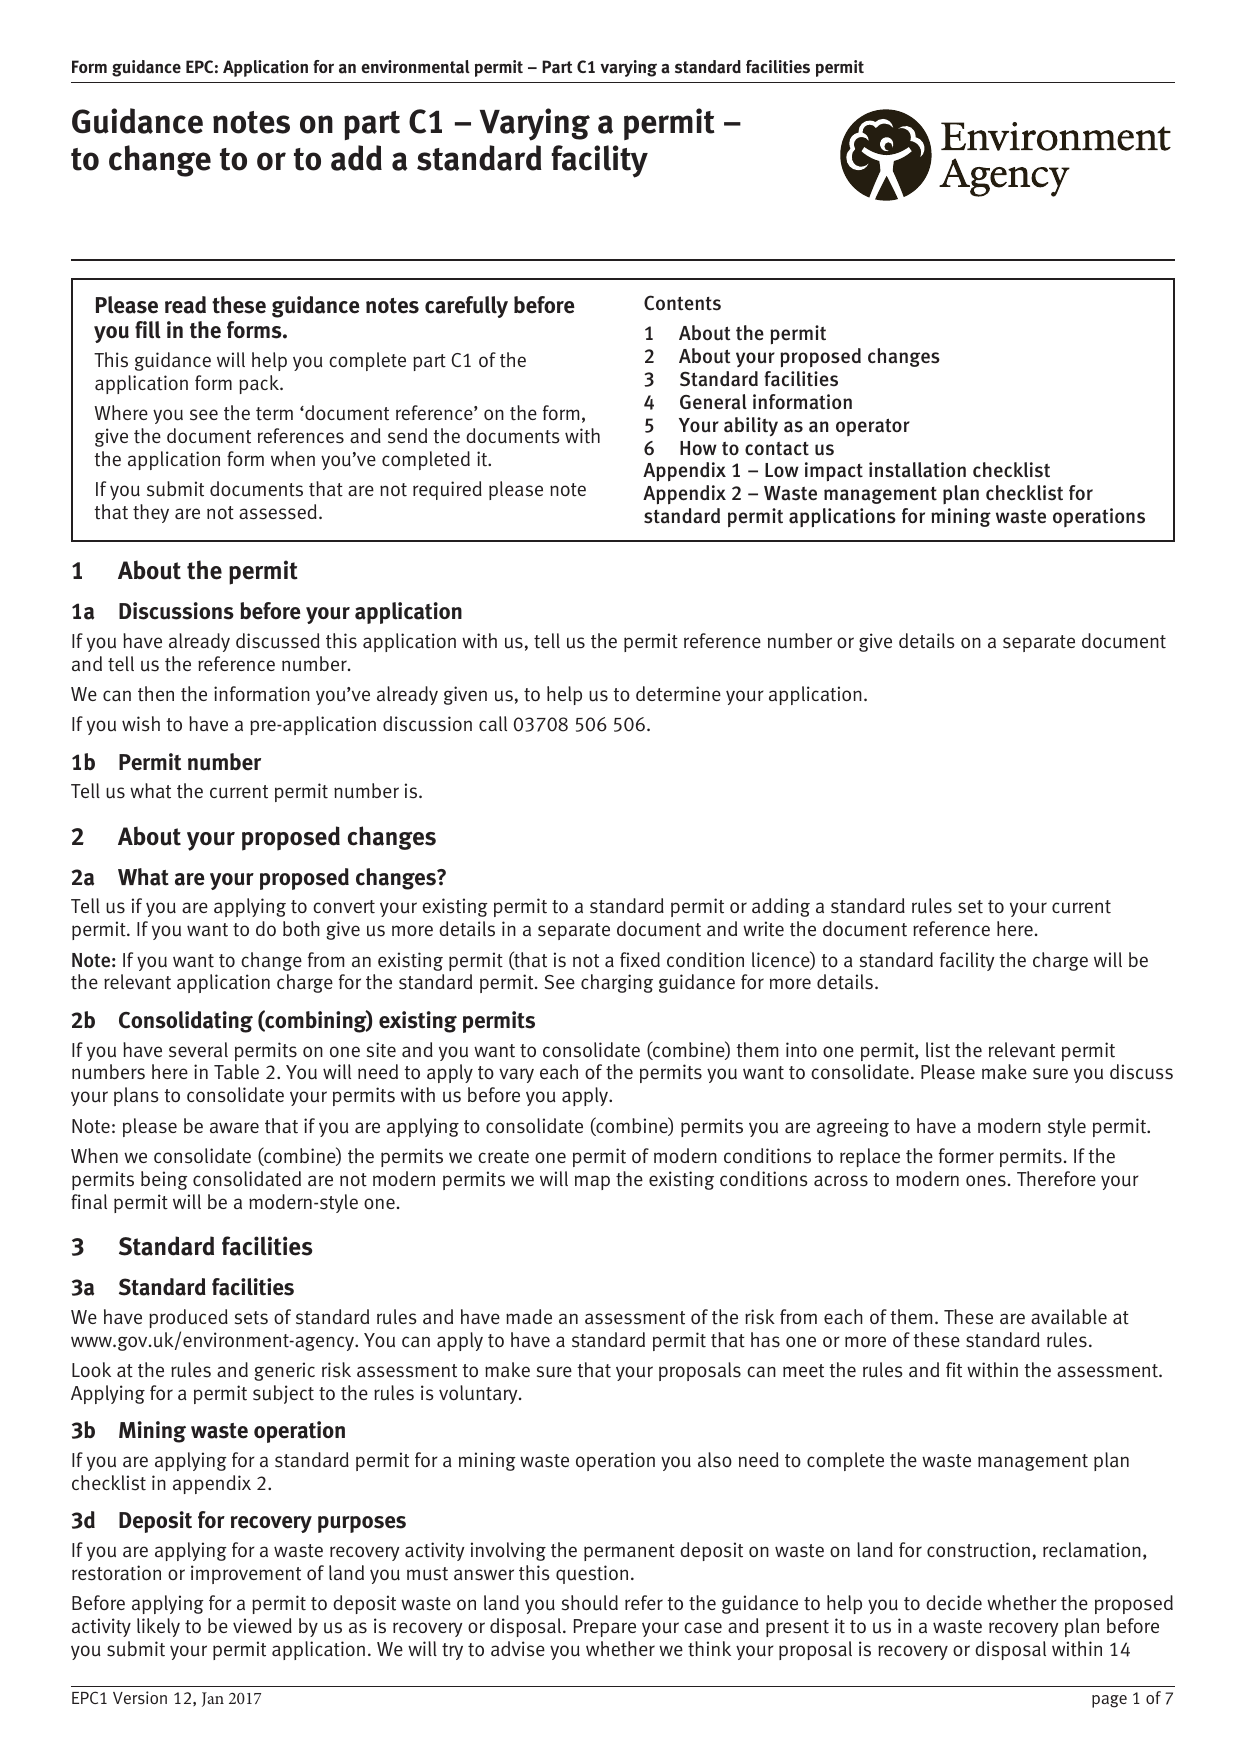 Form explorer attachment form guidance epc application for an environmental permit part c1 varying a standard facilities permit falaconquin